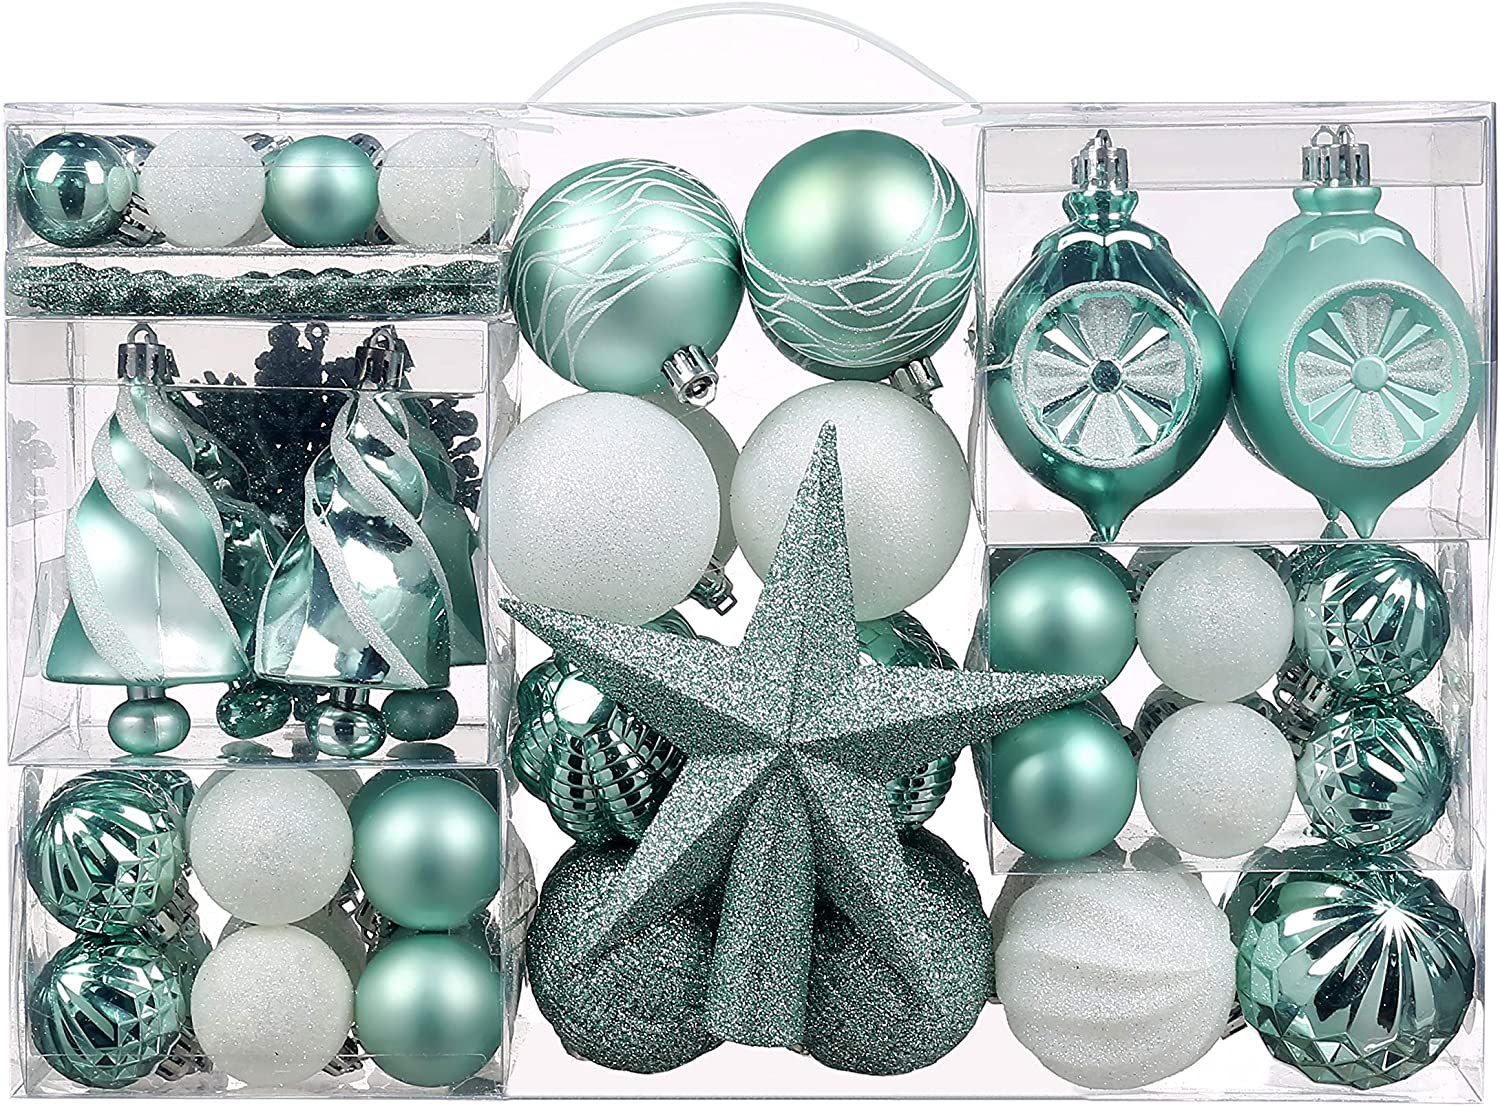 Christmas Ball Ornaments, 100 Pcs Assorted Shatterproof Christmas Ball Set with Gift Package, for Christmas Tree Decor(Mint Green and White)